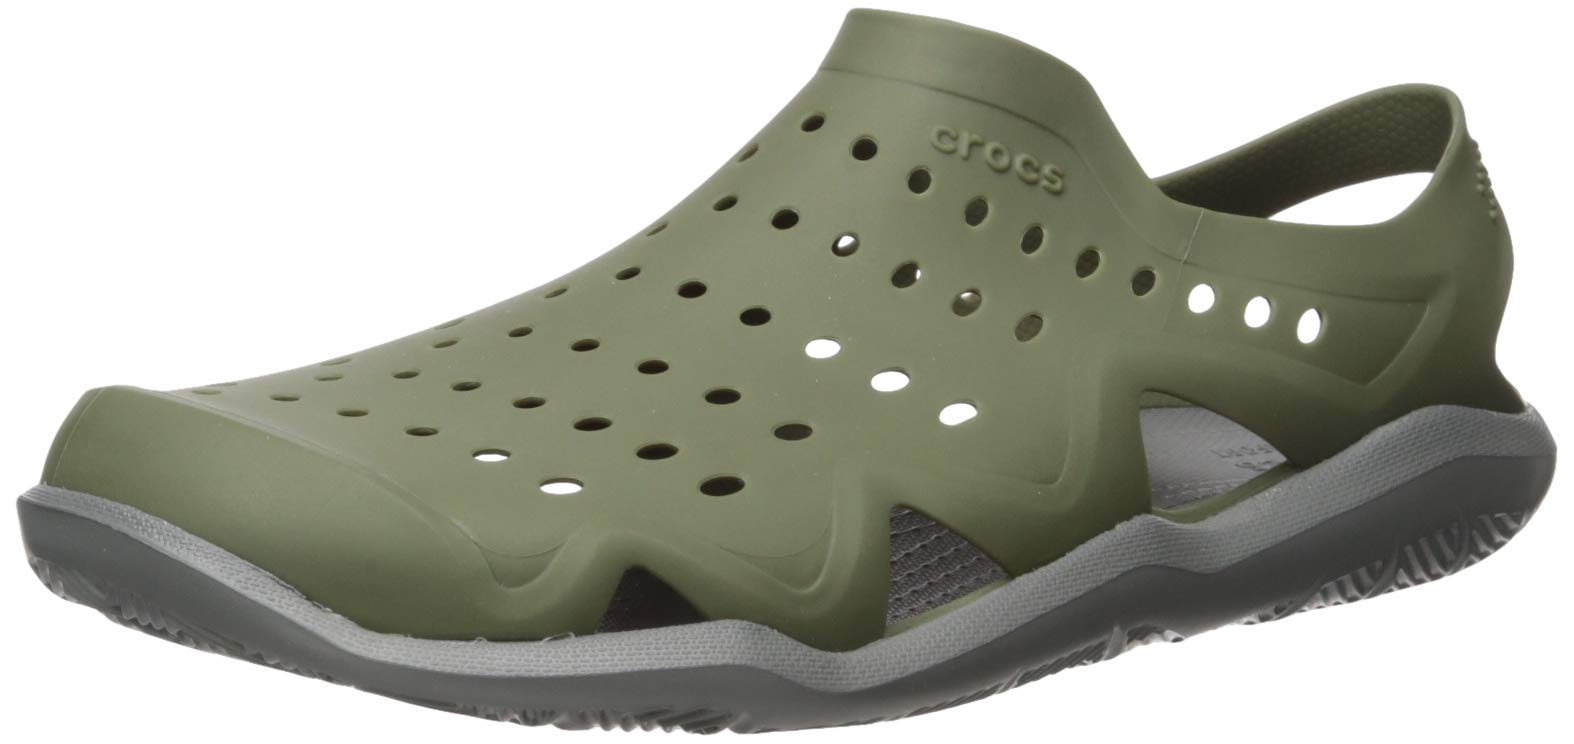 Crocs Men's Swiftwater Wave Sandal Water Shoe, Army Green/Slate Grey, 5 M US by Crocs